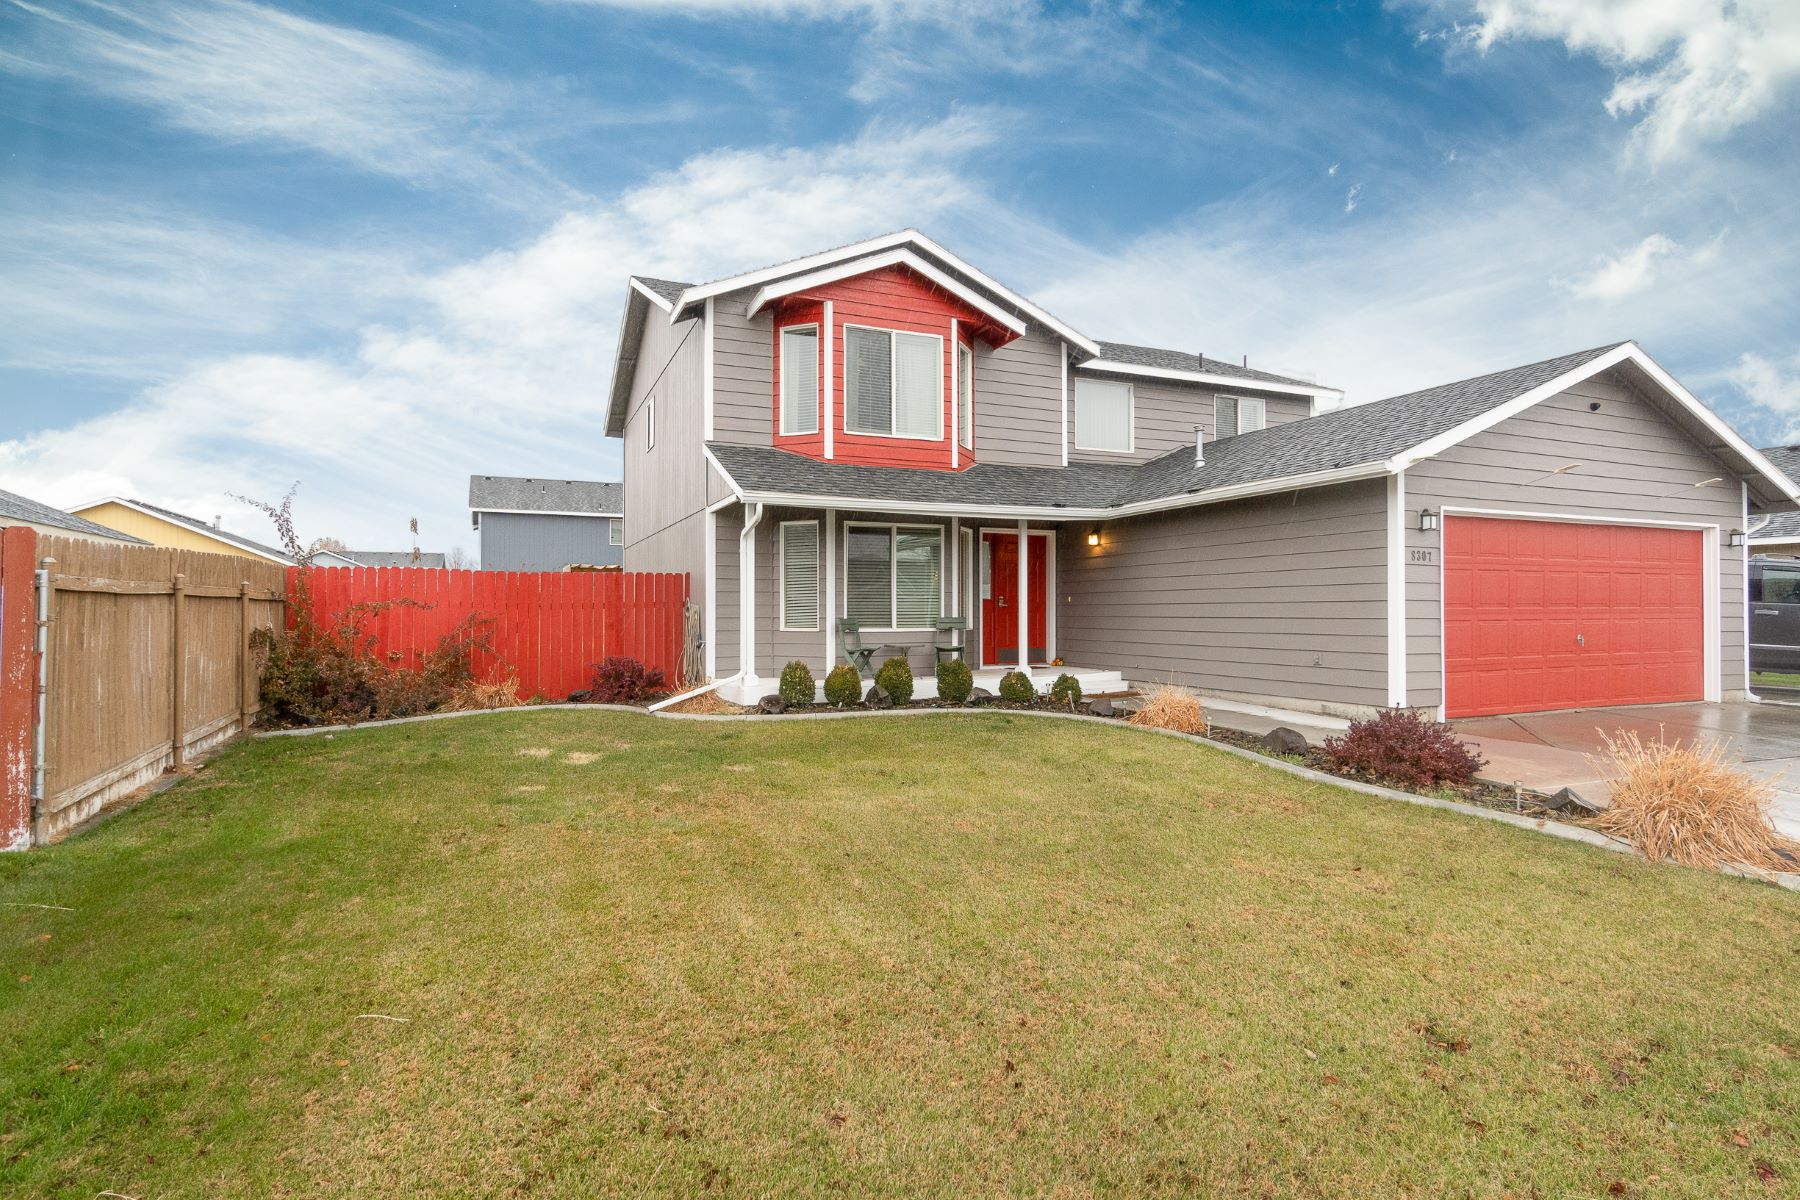 Single Family Homes for Sale at Adorable Doesn't Come Close to Describe This Home 8307 Lopez Dr Pasco, Washington 99301 United States